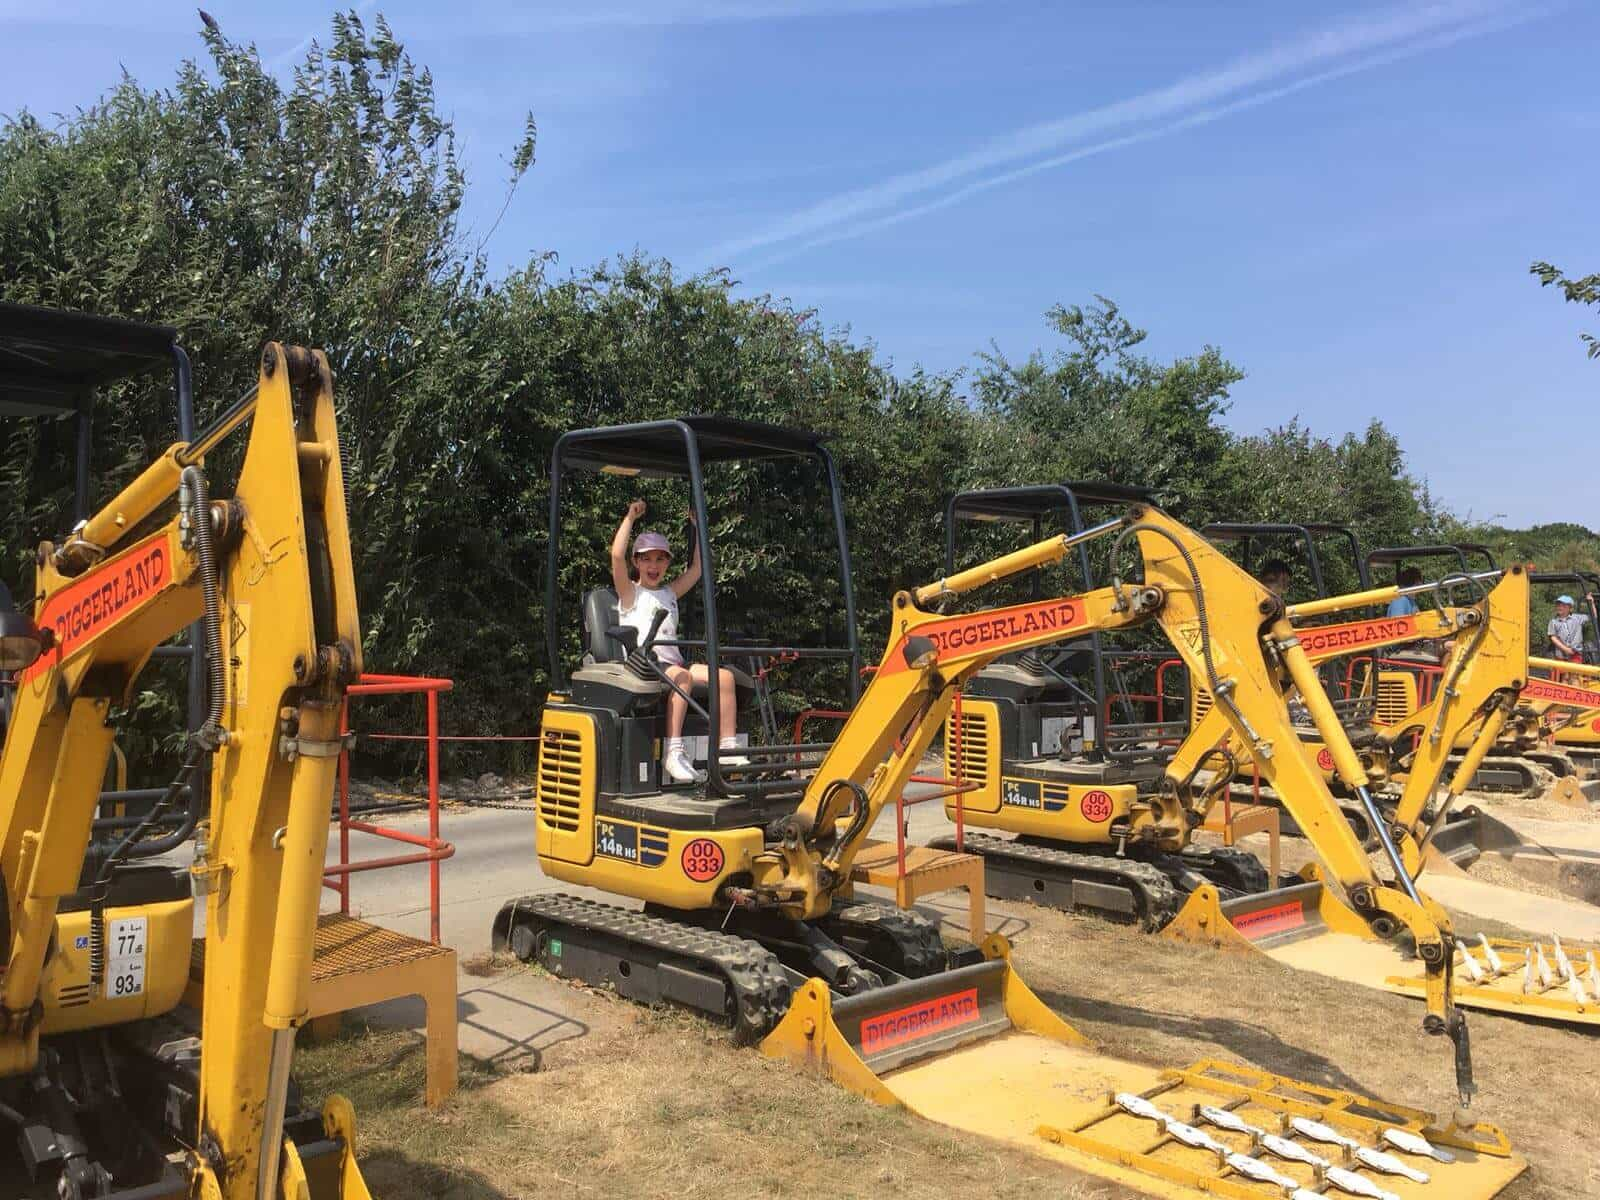 Diggerland Kent Days Out With The Kids In Kent, Skittles, Diggerland, Diggerland Days Out With The Kids In Kent